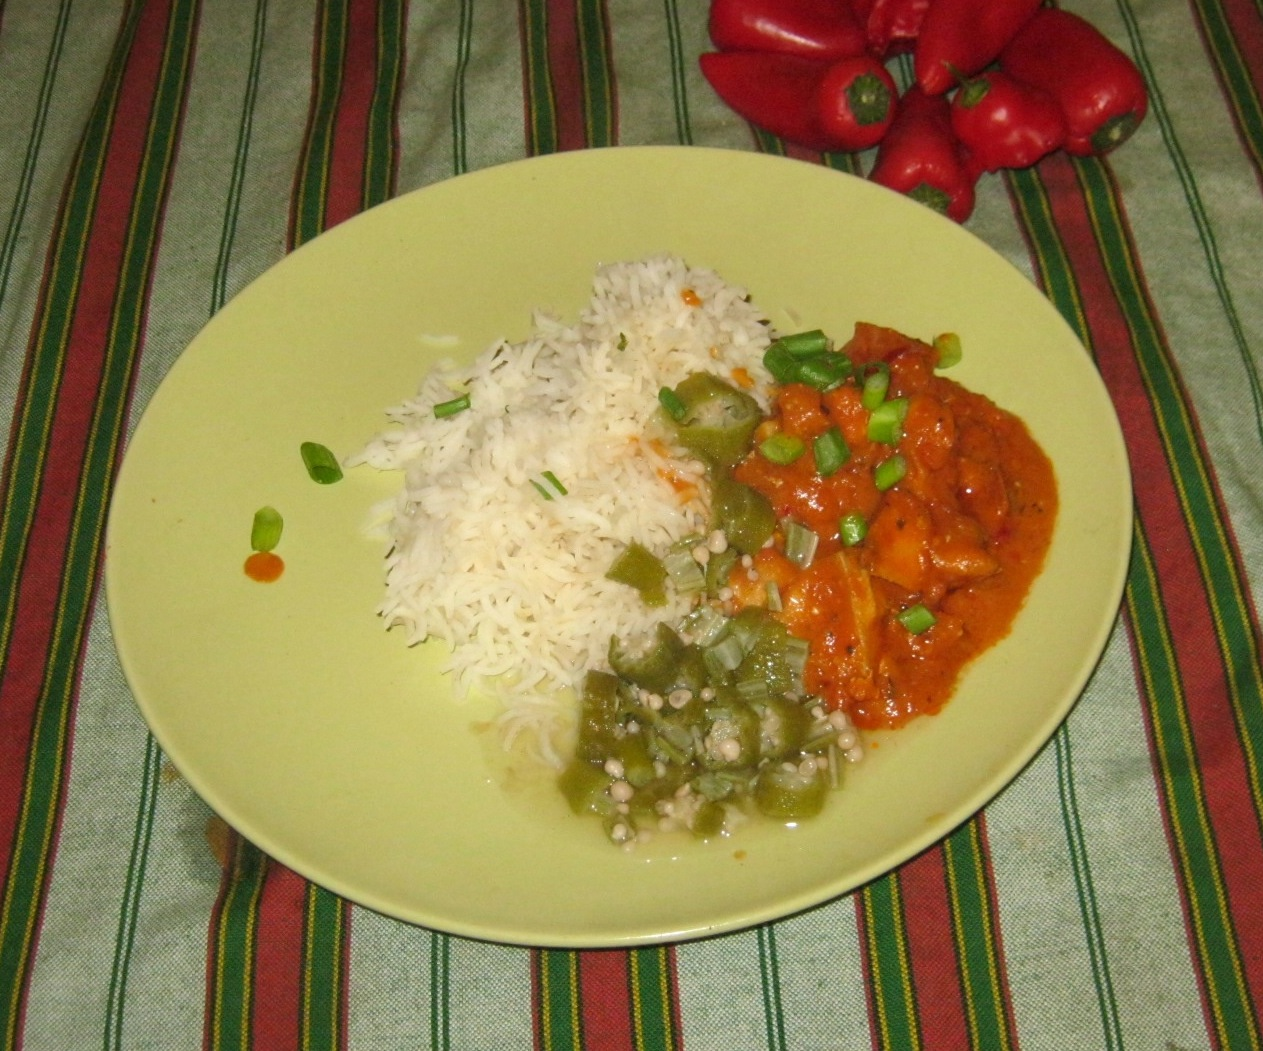 Hot Ghanaian Chicken Stew with Okra and Steamed Rice